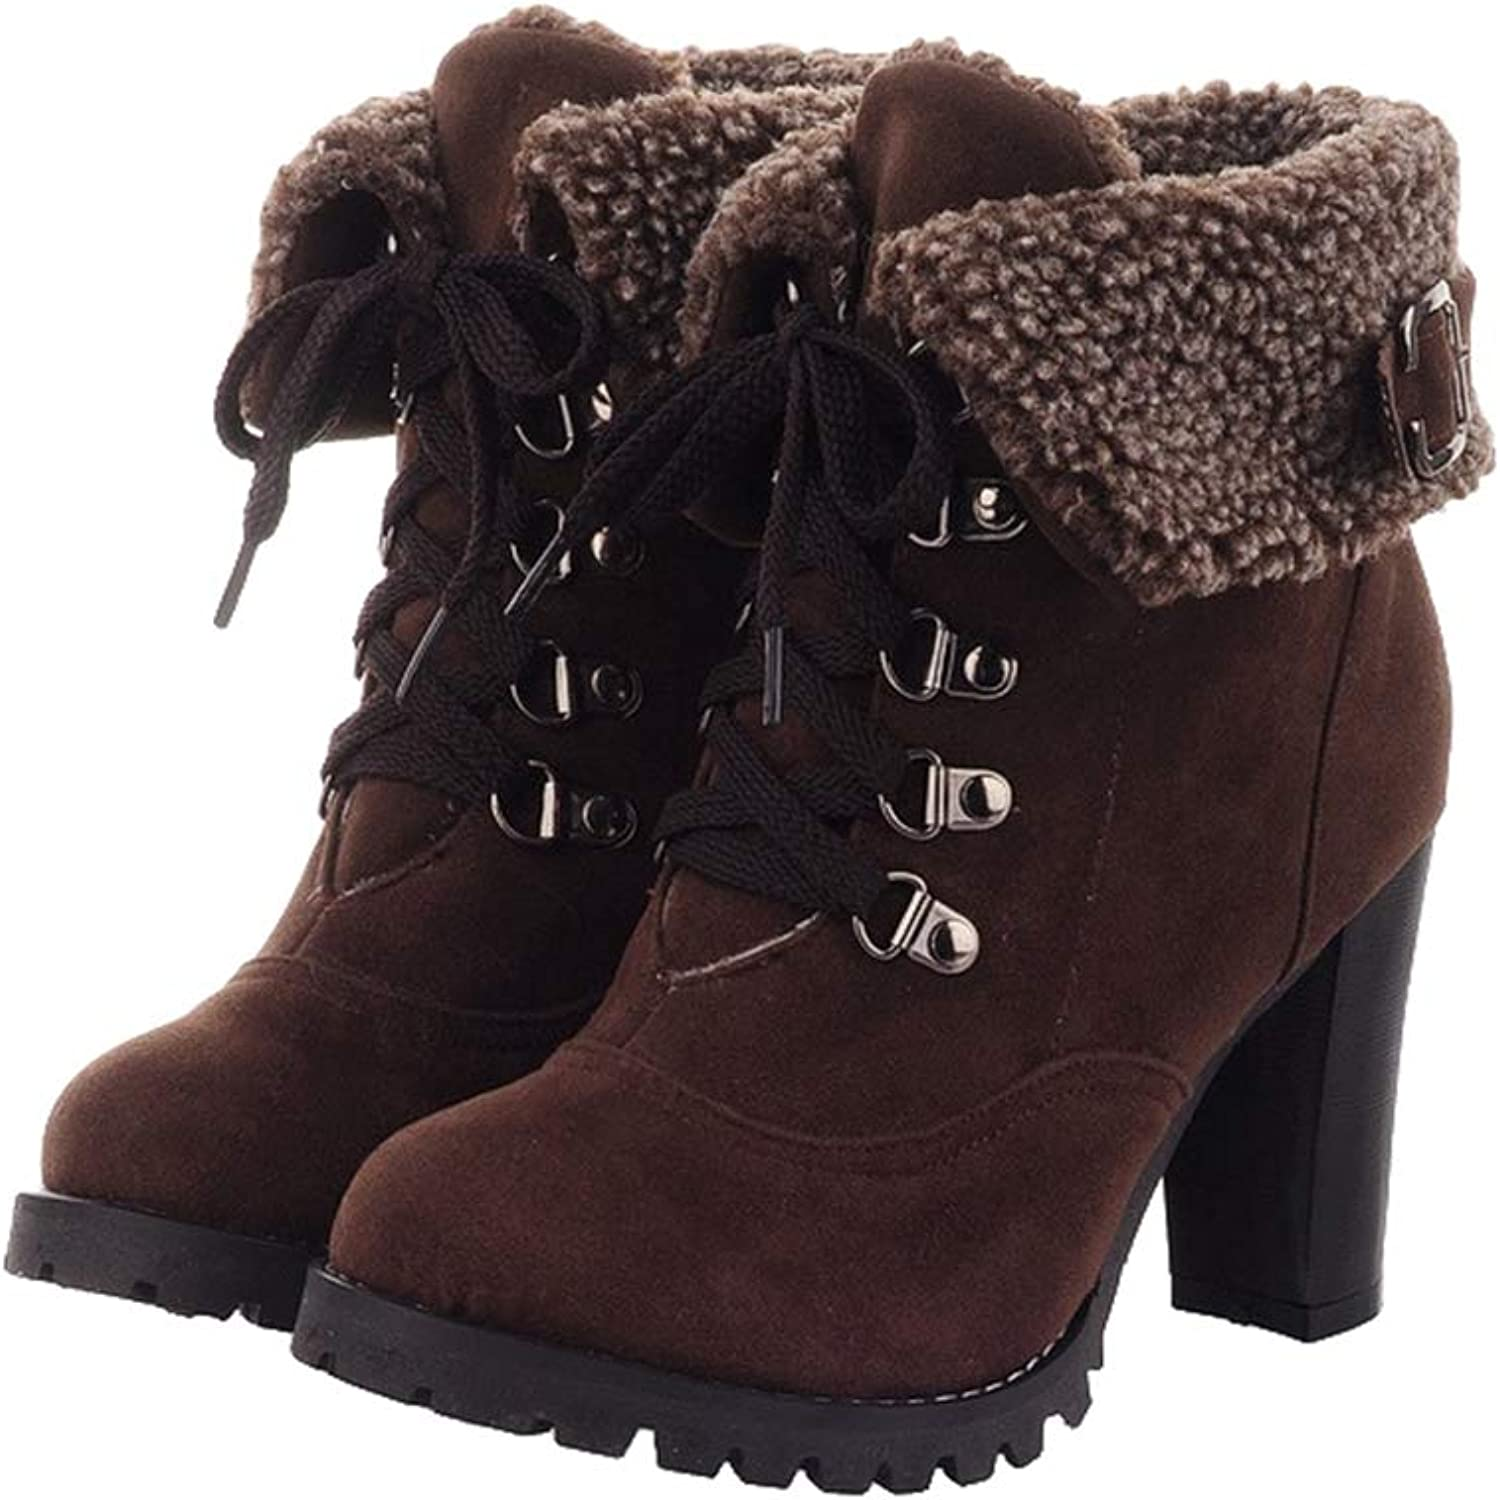 Kyle Walsh Pa Women Ankle Booties Female Martin Boots Square High Heel Lace-up Warm Fur Winter shoes